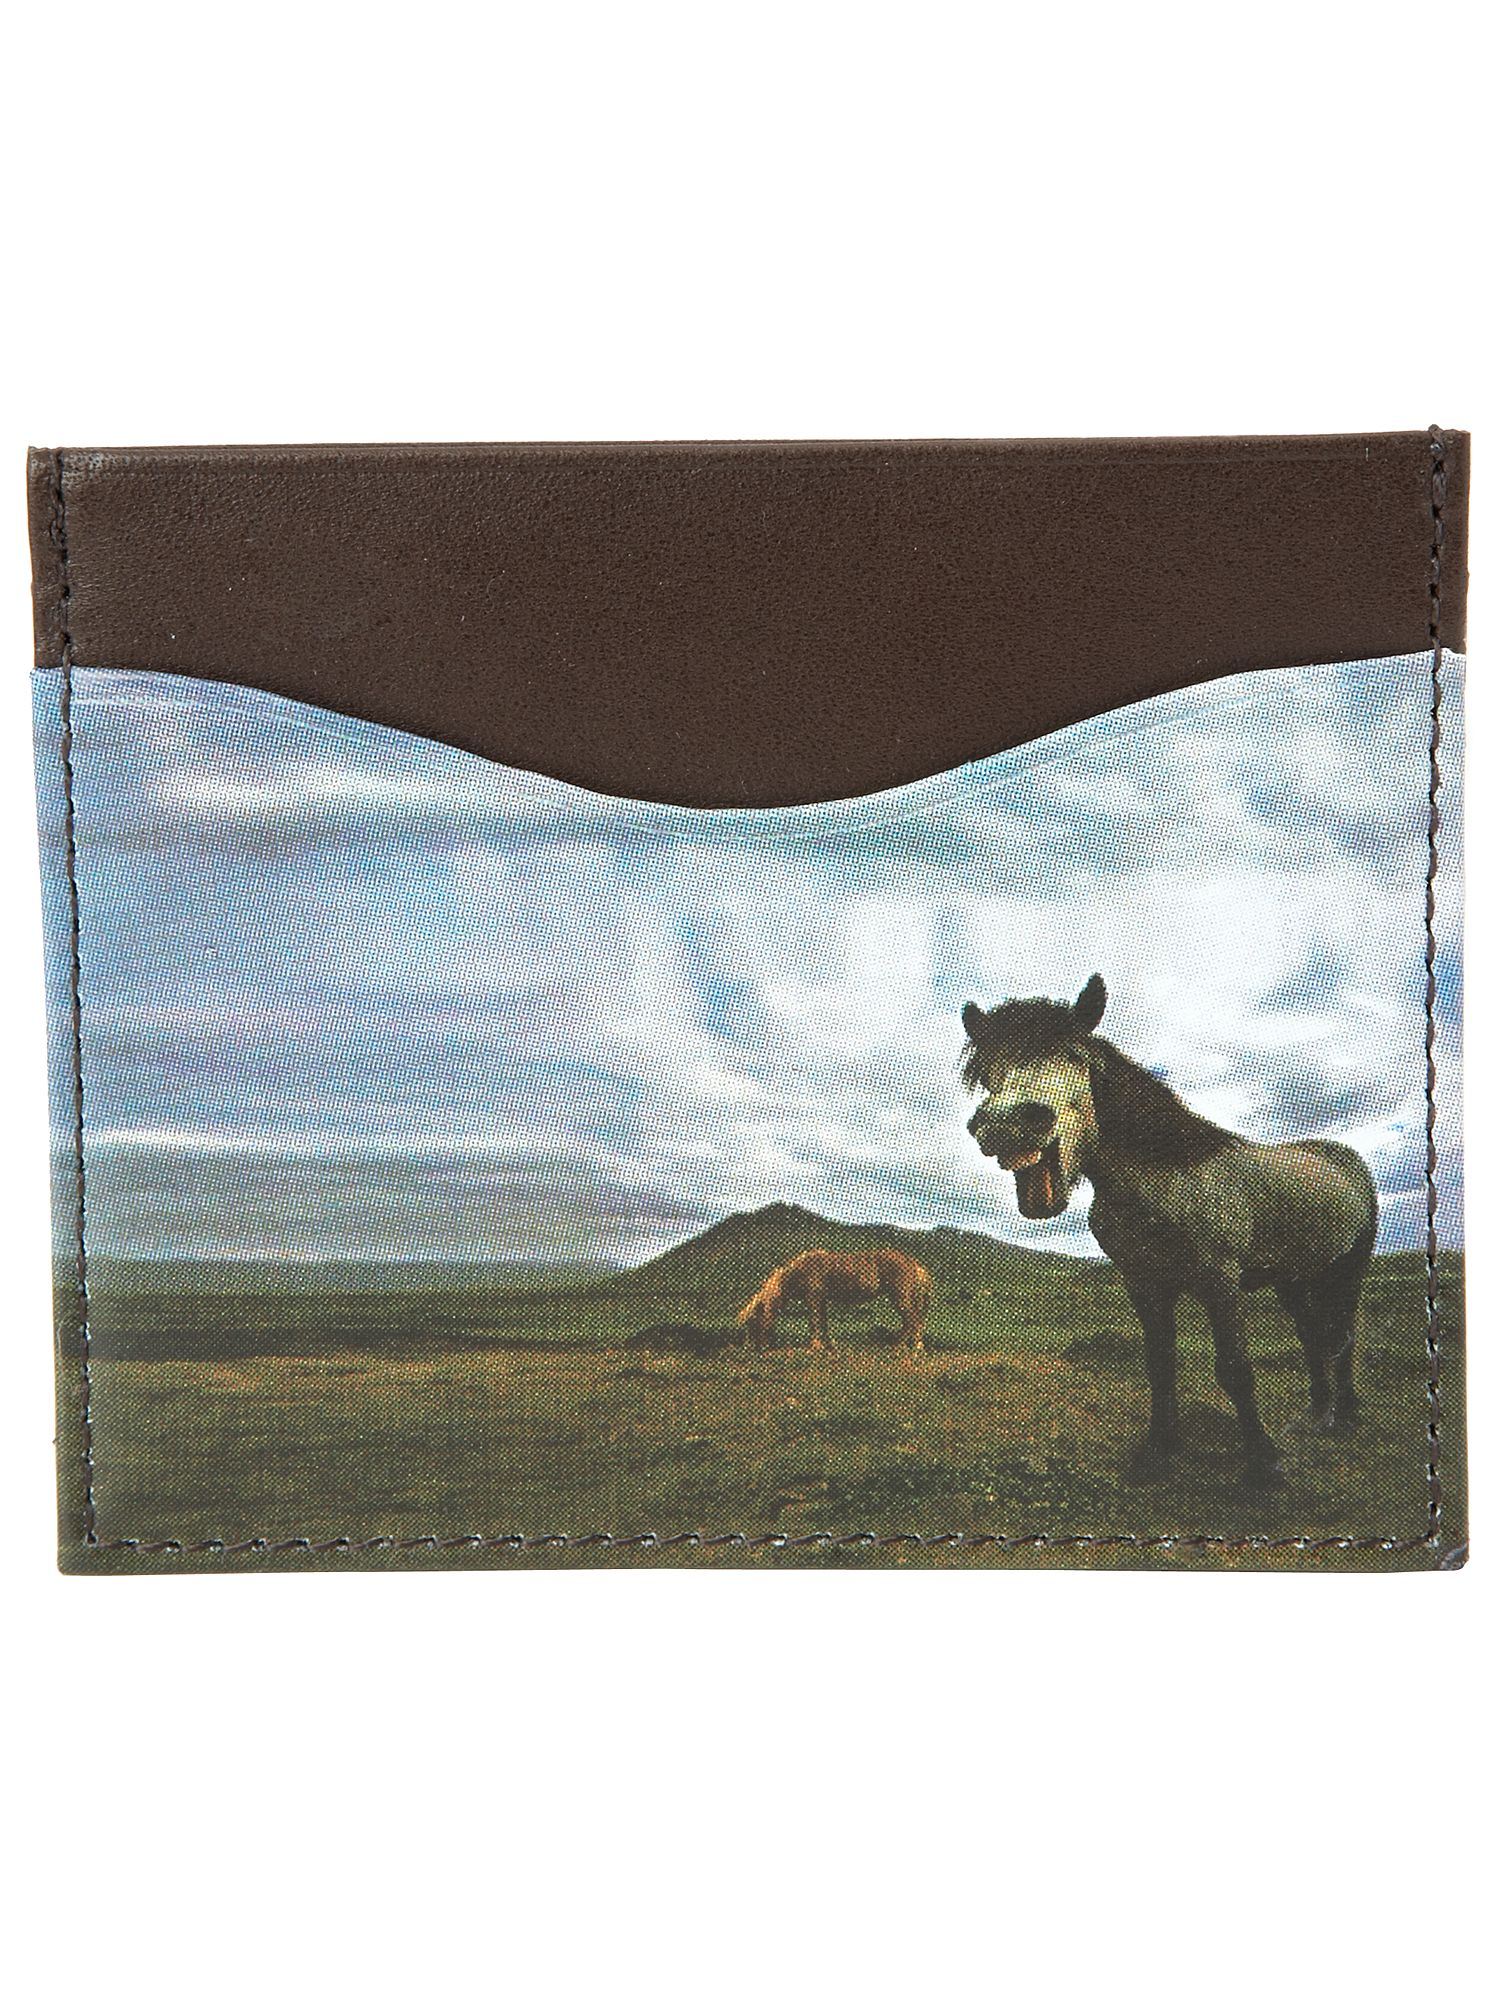 Ted Baker Credit card holder with pony insert Chocolate product image